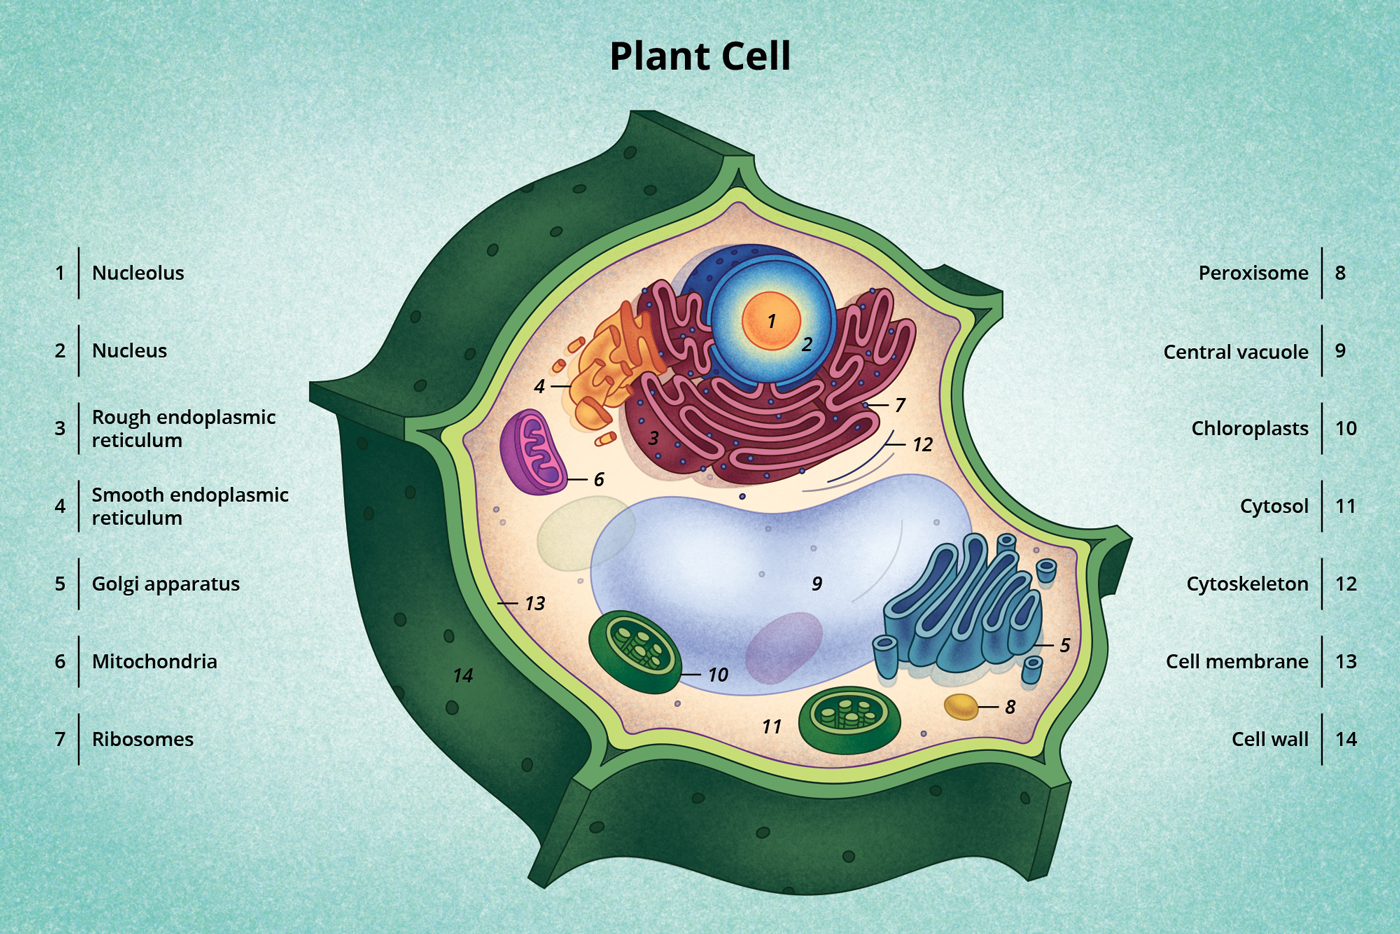 Discovery And Structure Of Cells Biology Visionlearning Prokaryotic Cell Diagram Labeled As Figure 6 A Typical Plant Both Eukaryotes Prokaryotes